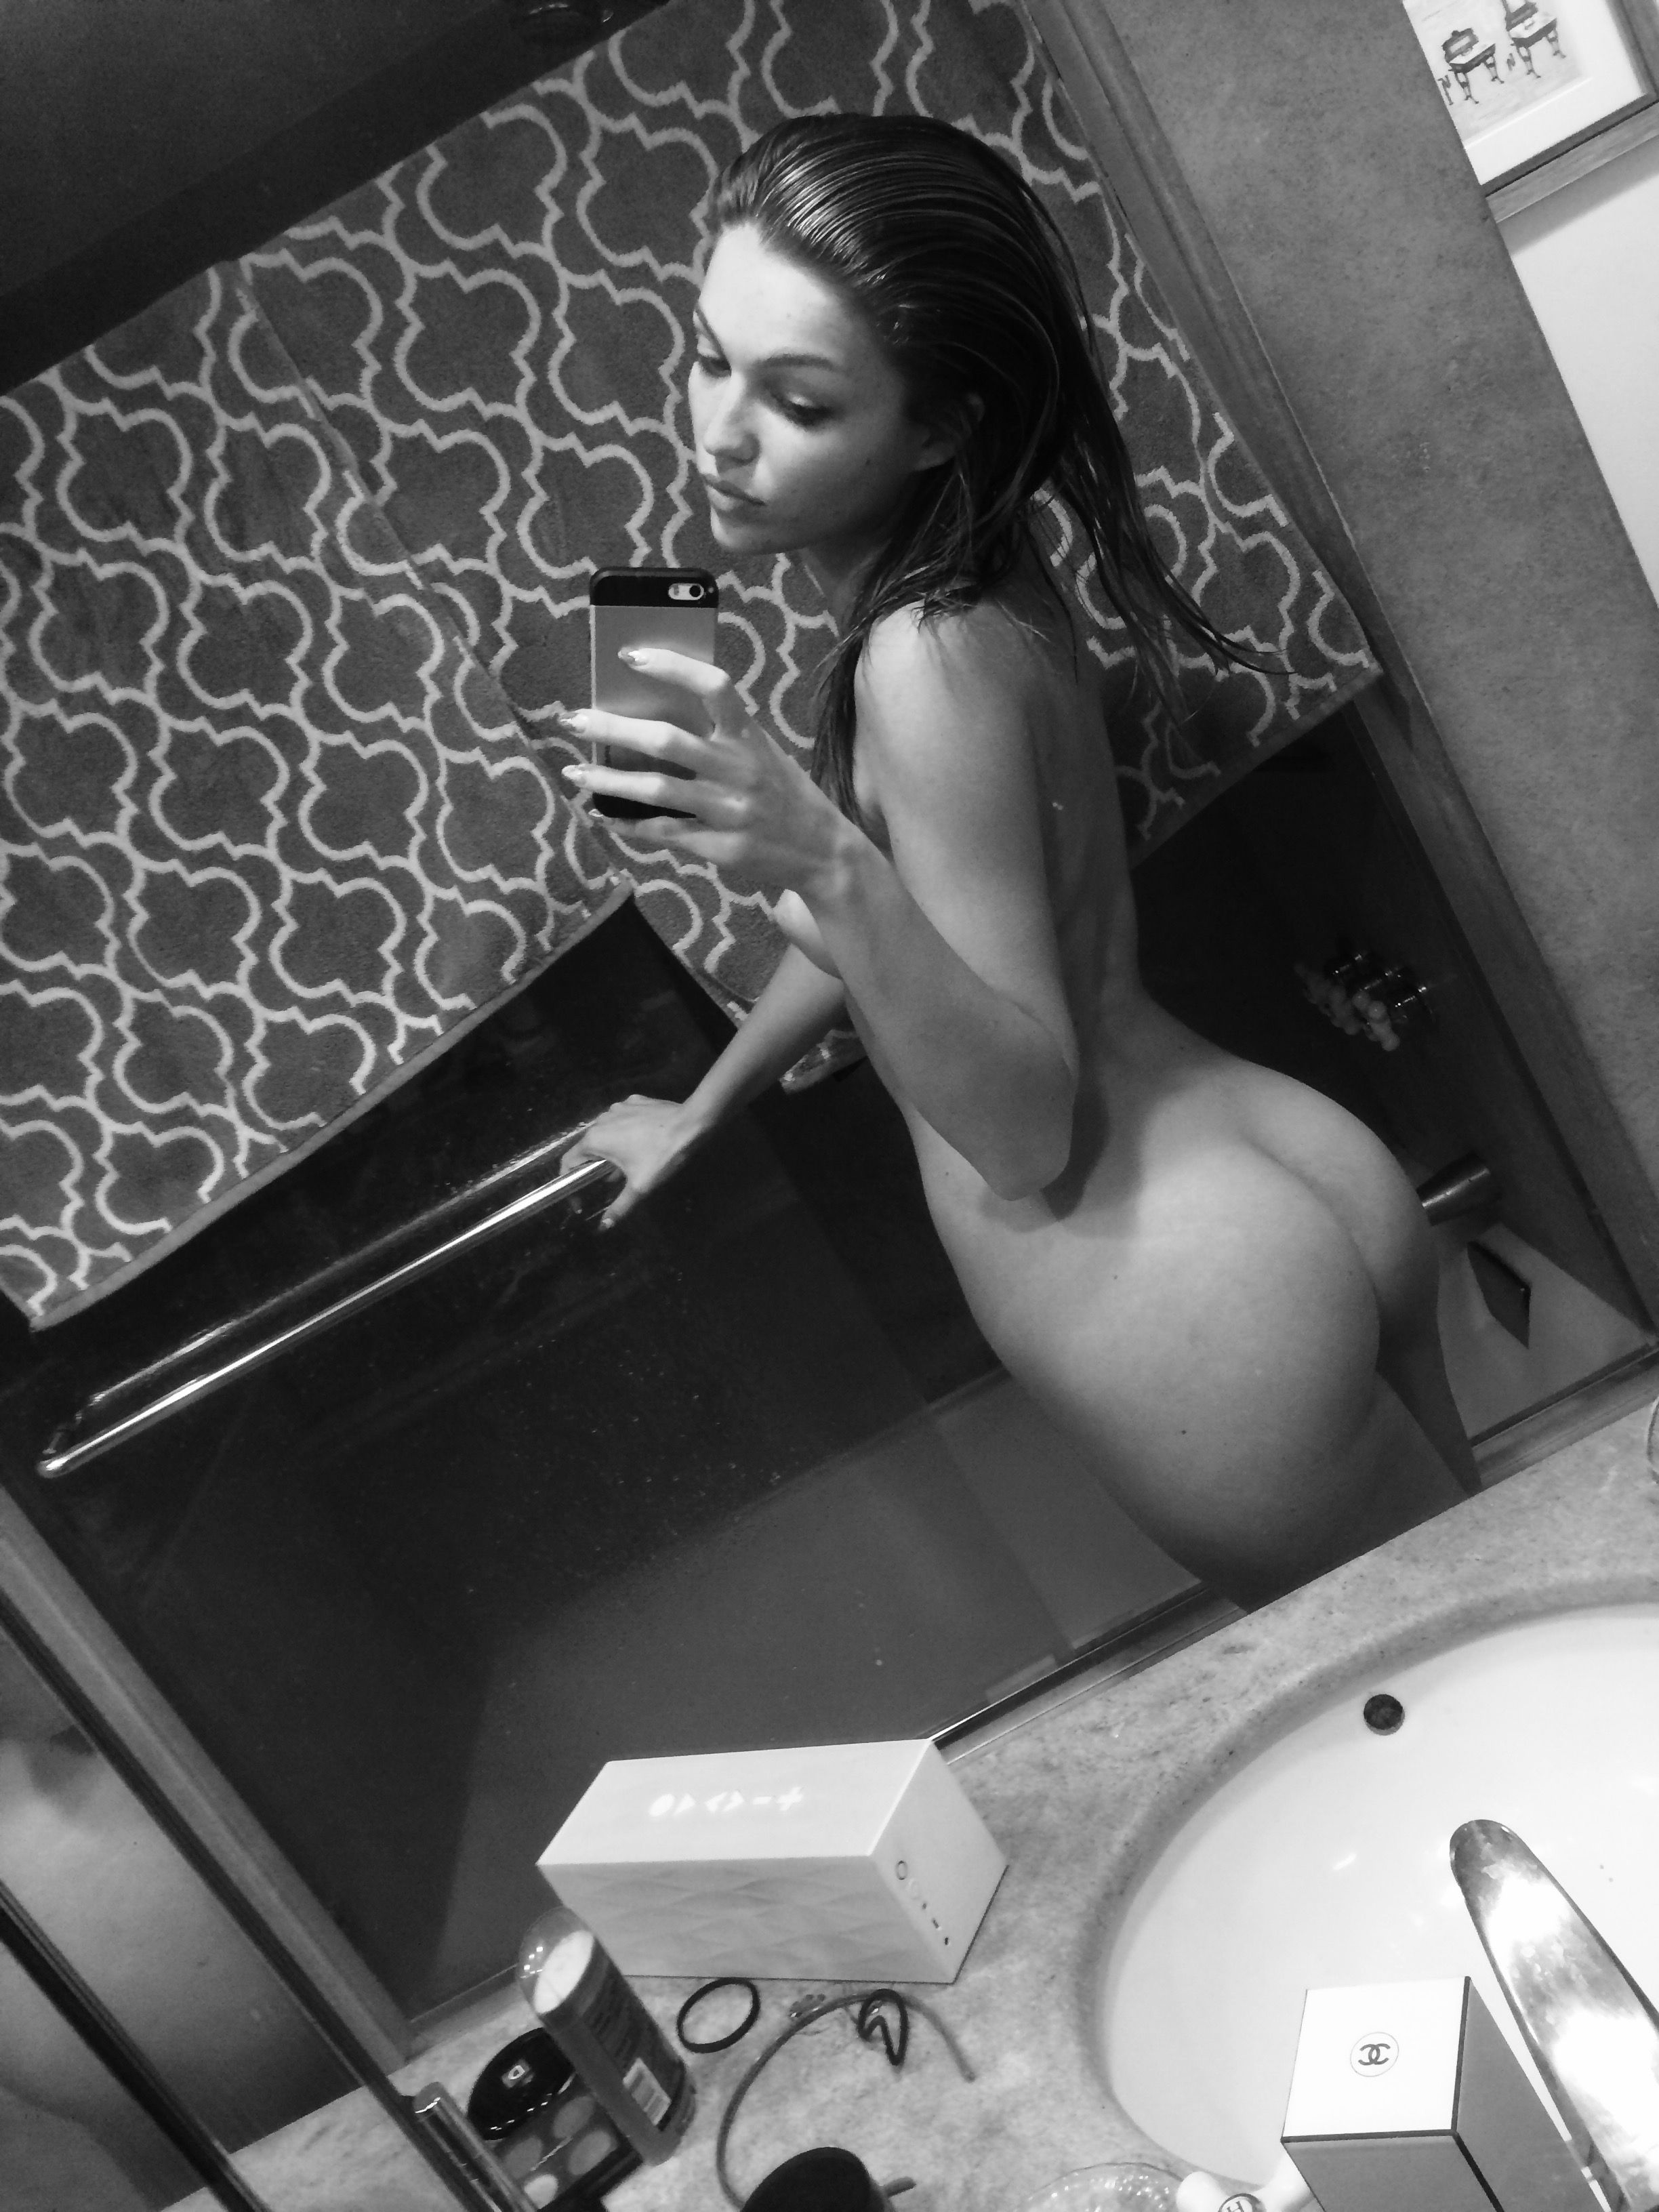 Lili-Simmons-Leaked-5-thefappening.nu_98917.jpg